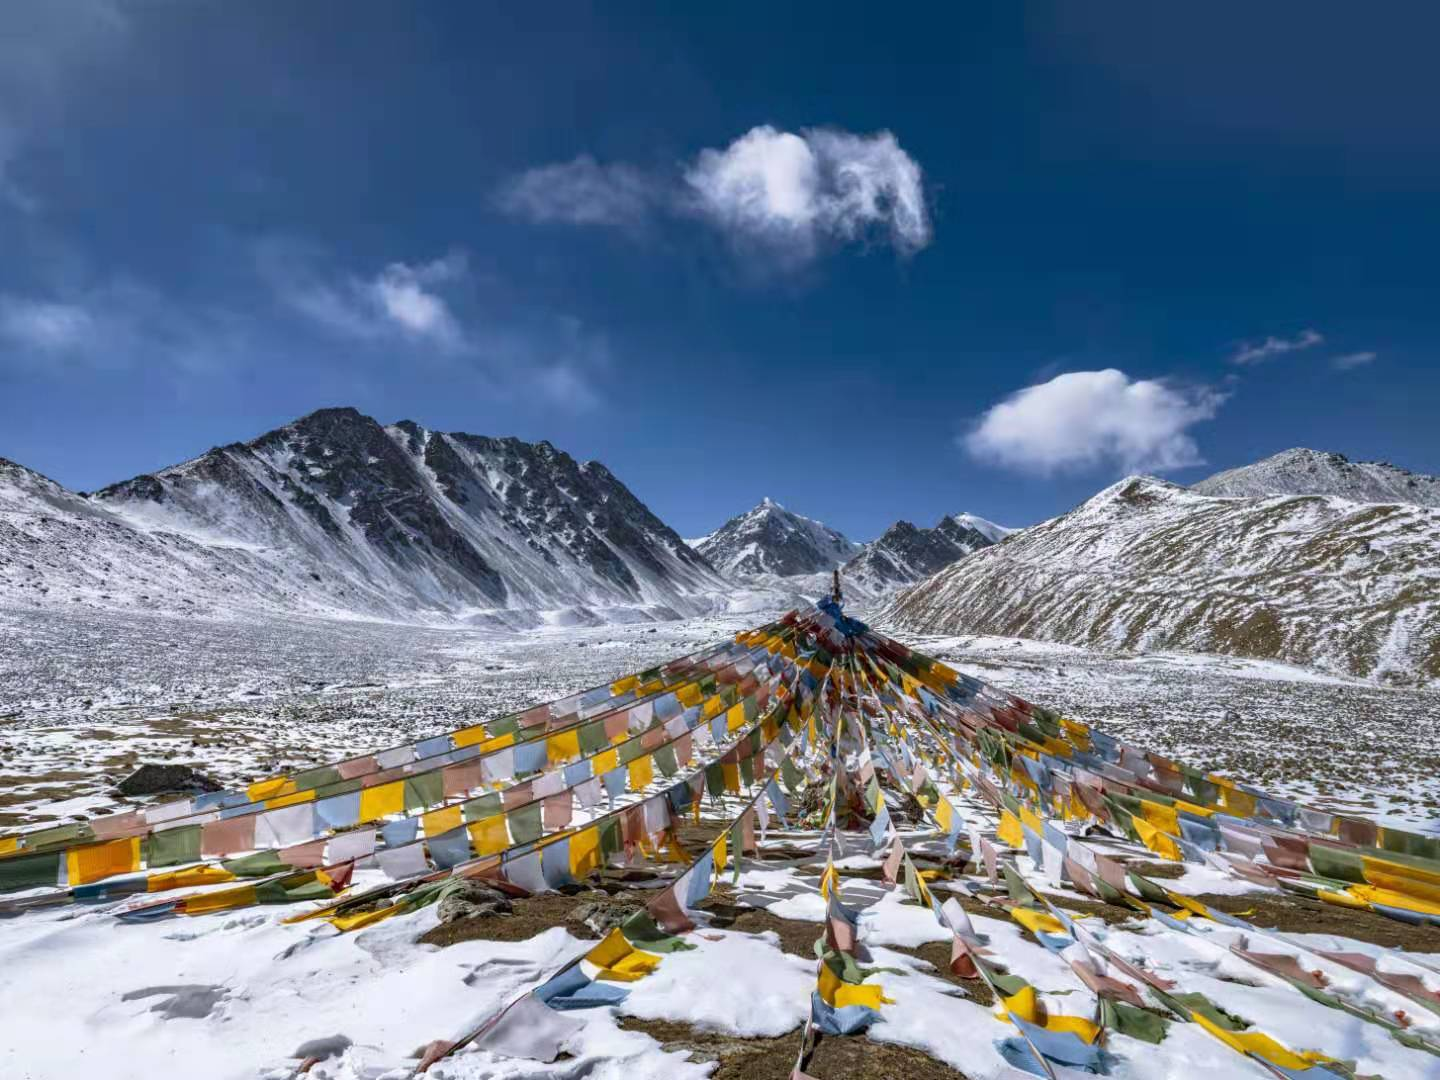 View of the sacred Bars Snow Mountain in Northwest China's Gansu